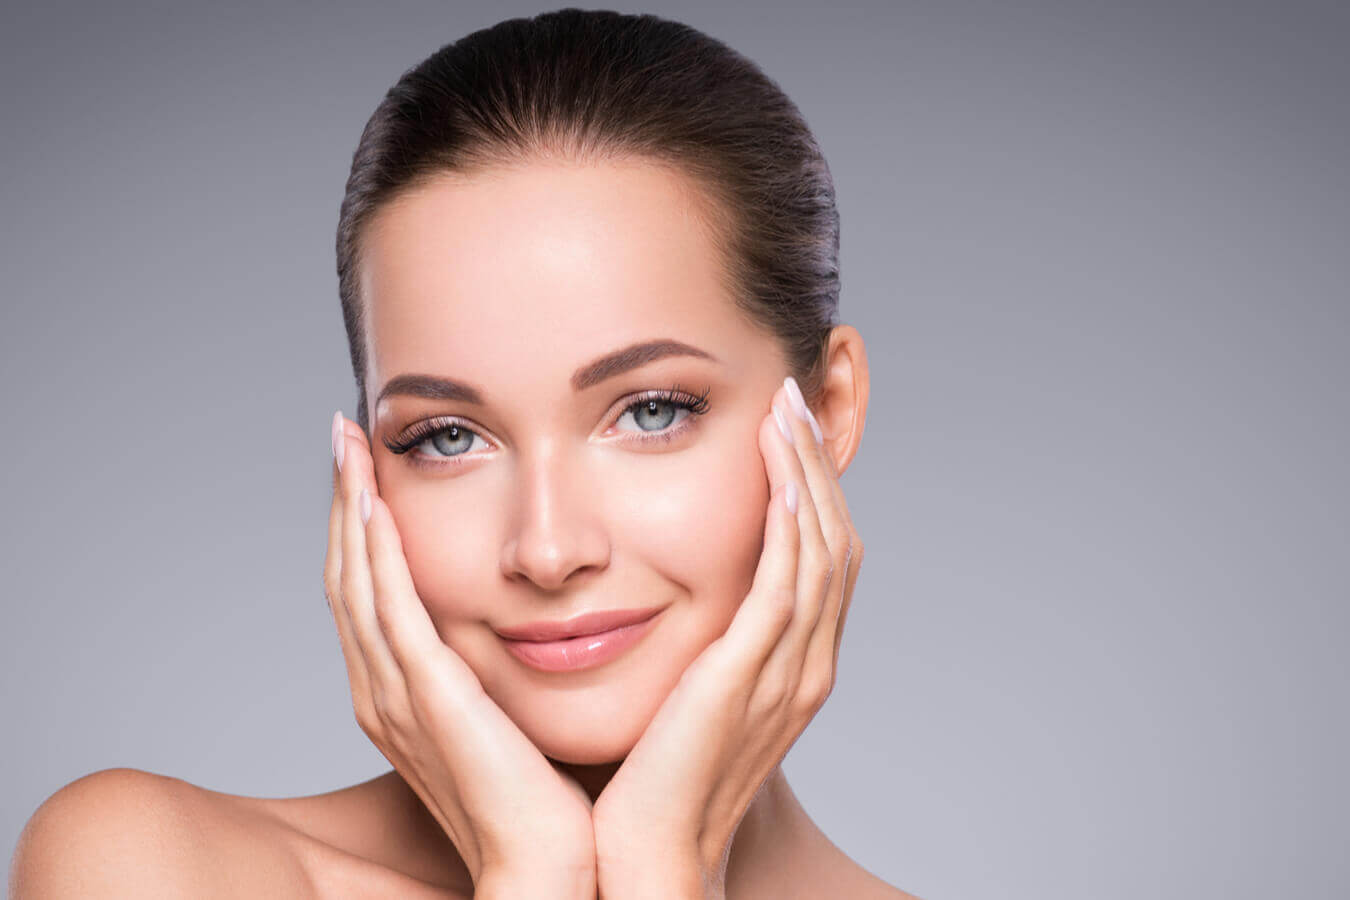 buccal fat removal Miami